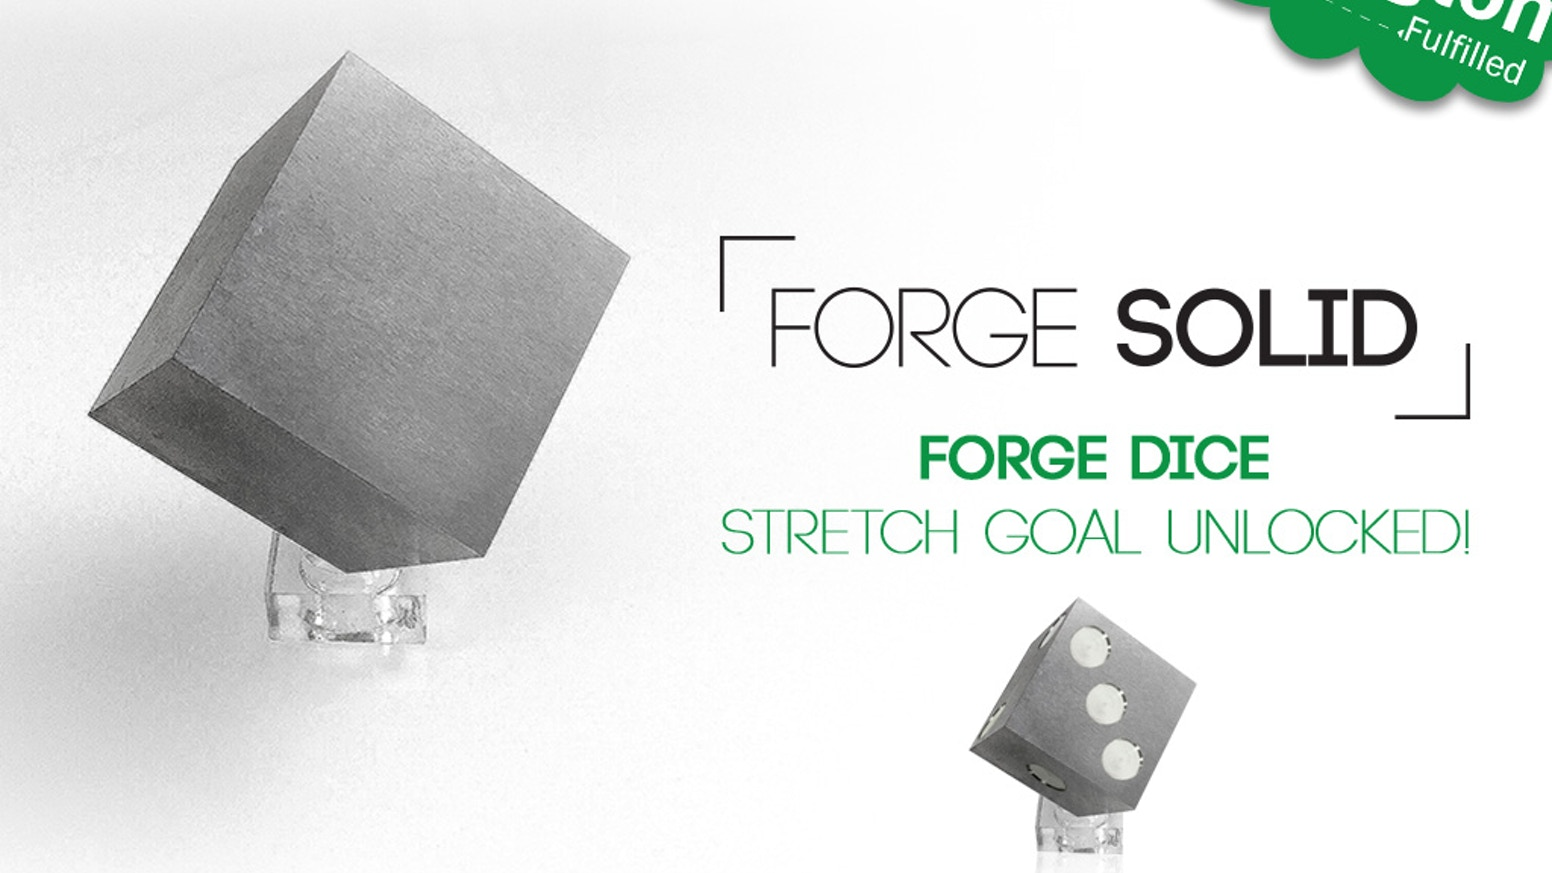 Introducing the KILO CUBE by Forge Solid.  Geometrically perfect, it's crafted from 1 kg of aerospace grade Tungsten (W).